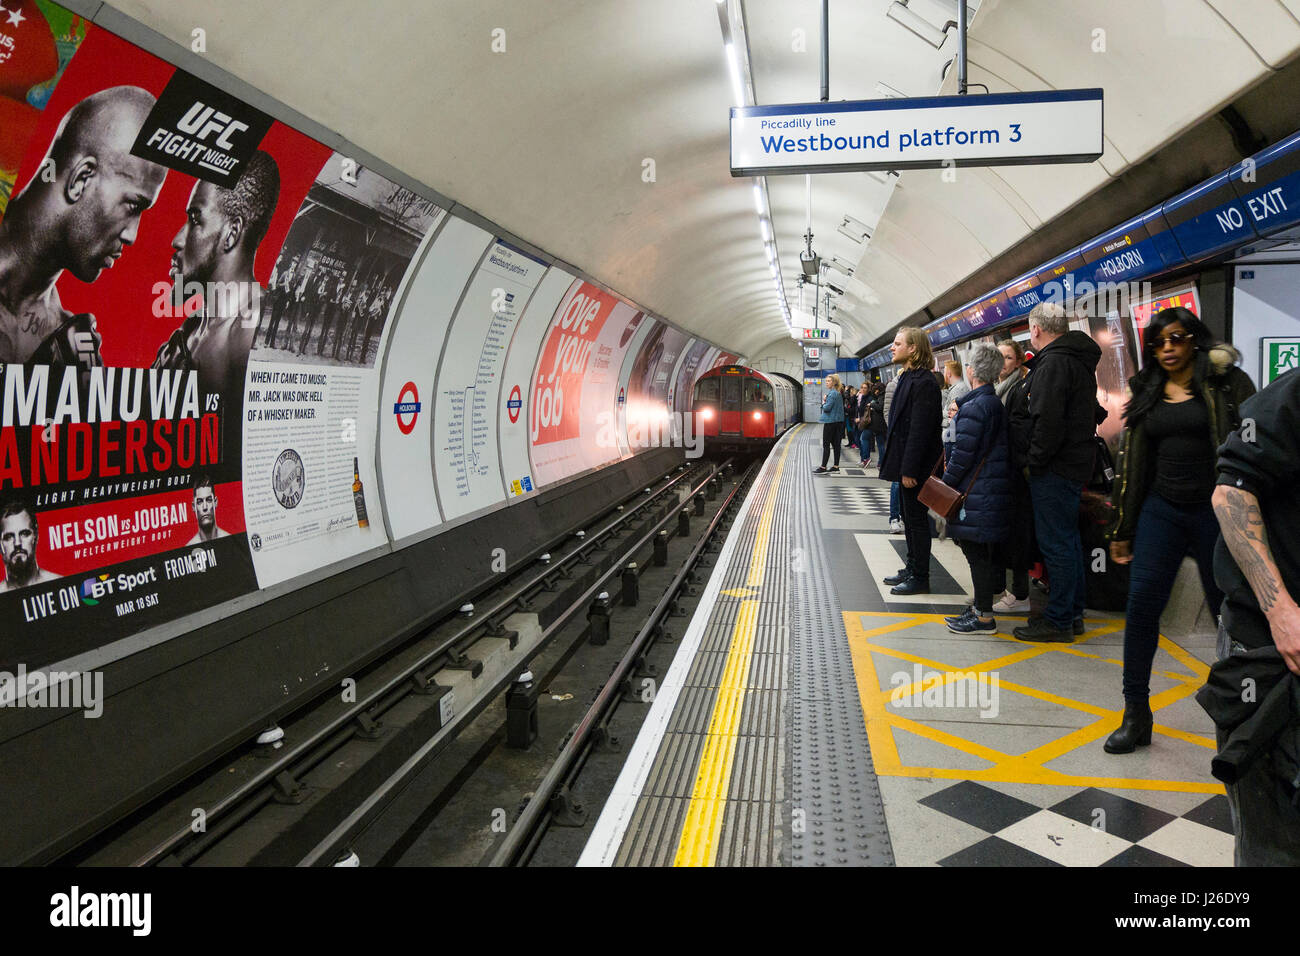 People waiting for the Piccadilly Line metro train to arrive at Westbound platform 3 of Holborn tube station, London, - Stock Image